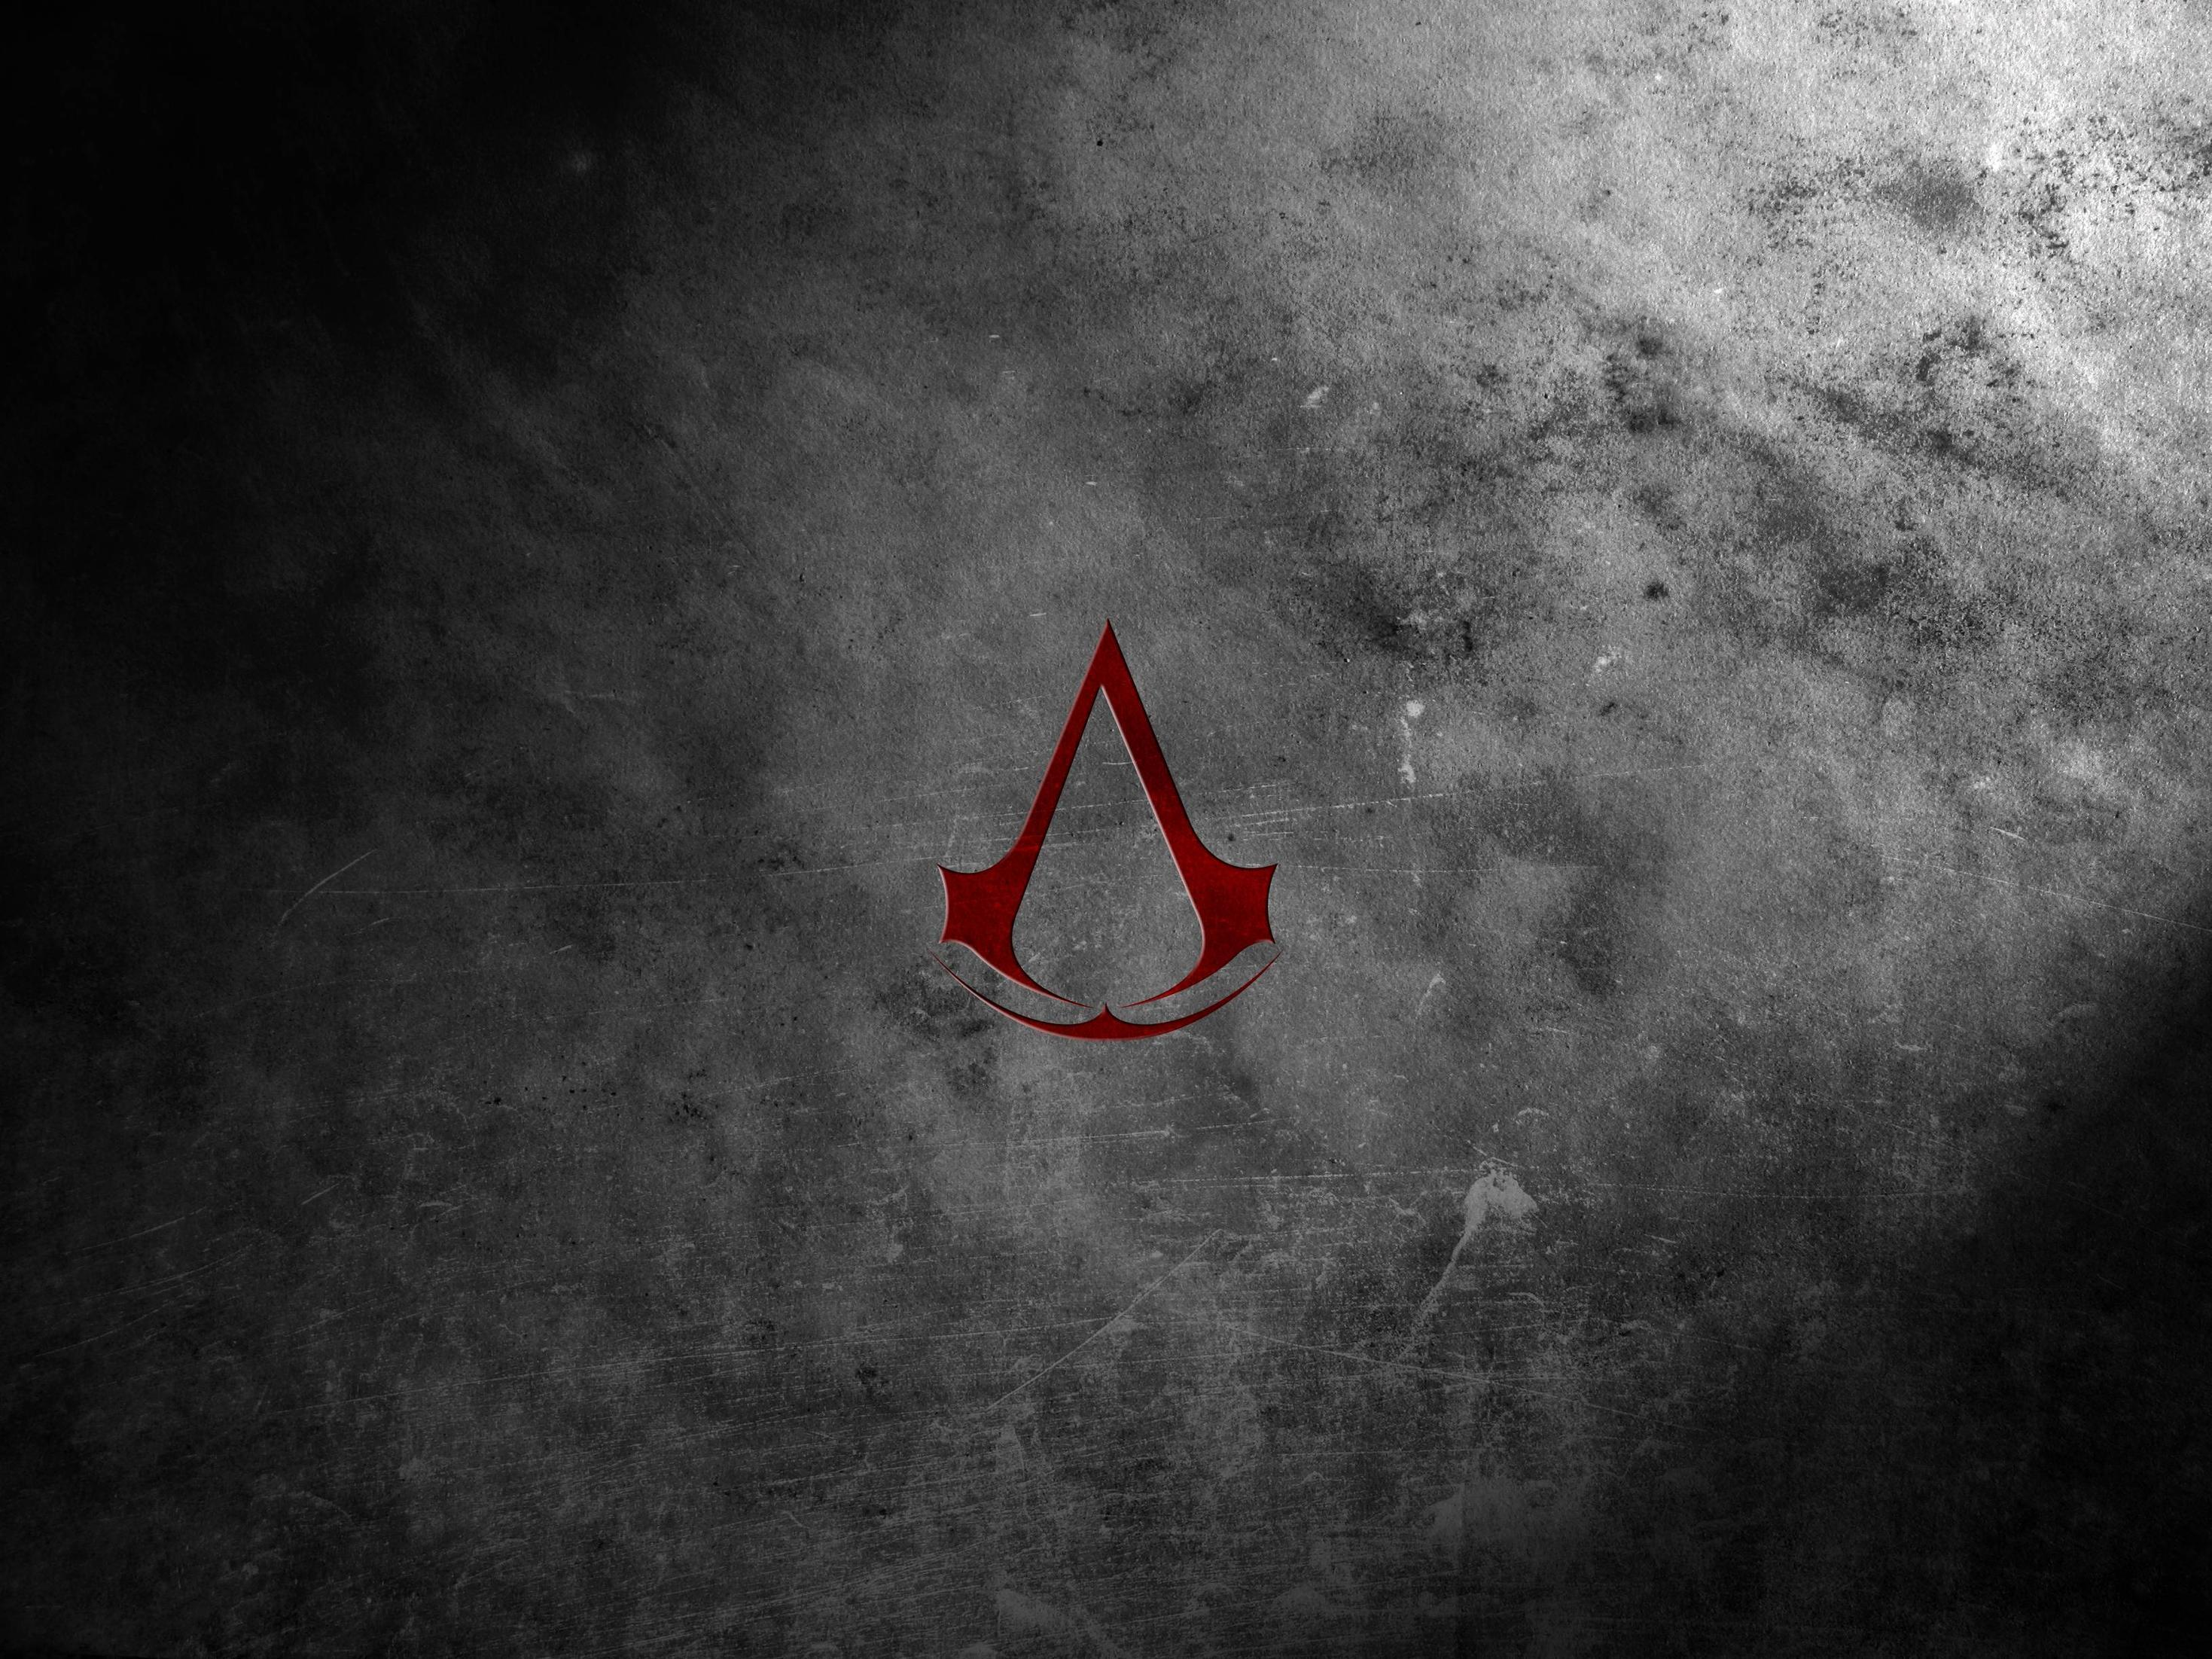 Assassins Creed Symbol Wallpapers 2938x2203